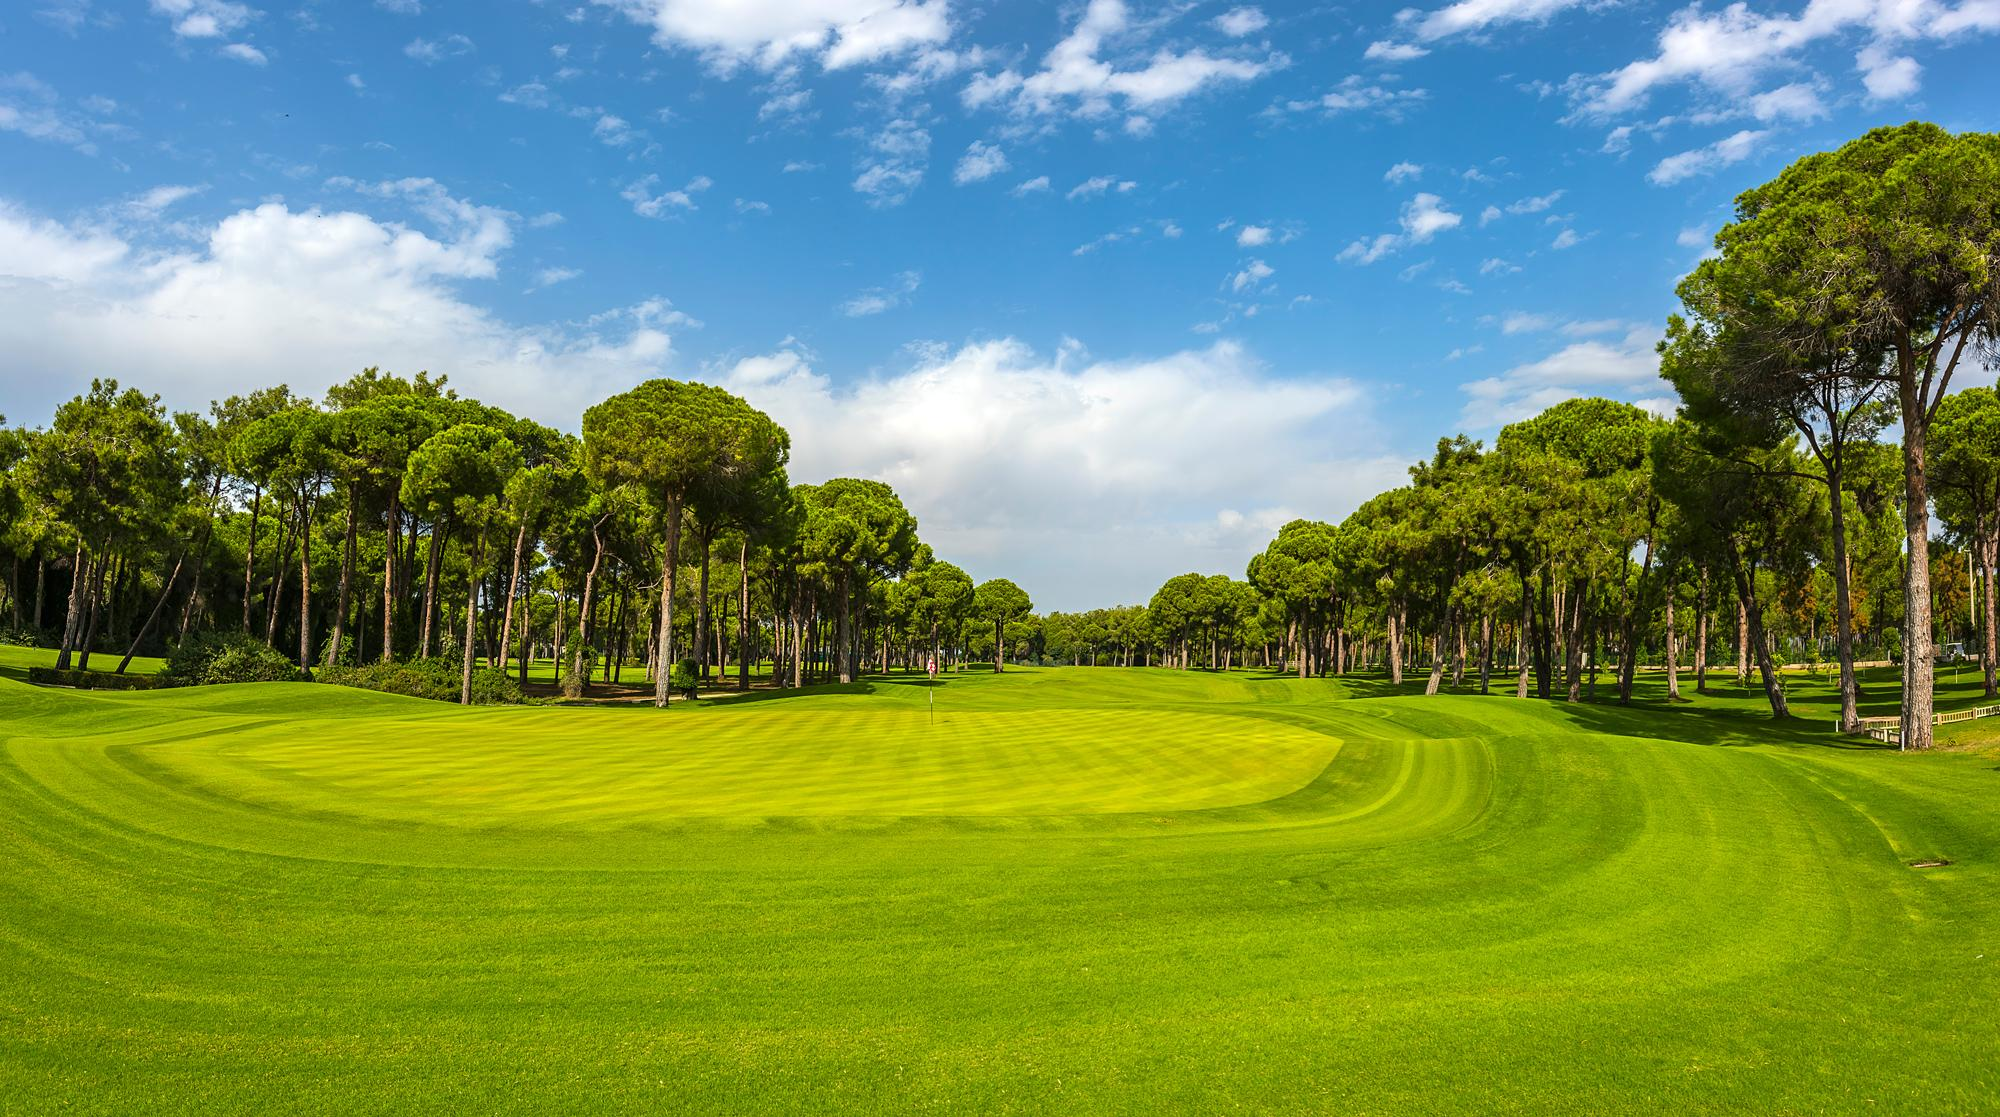 The Gloria New Golf Course's lovely golf course situated in brilliant Belek.